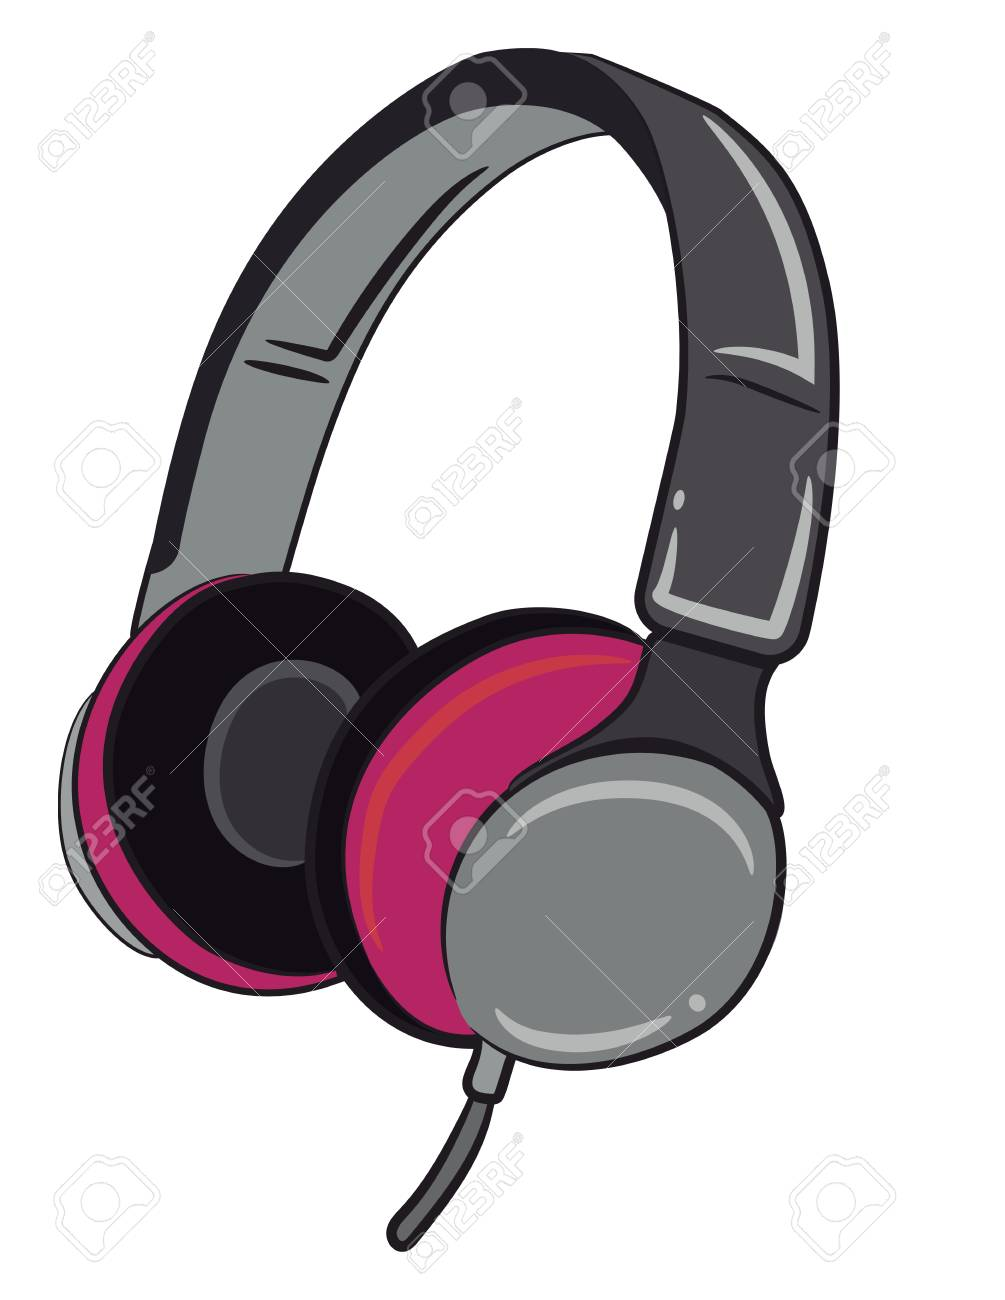 hight resolution of a wired headphone in grey and pink color vector color drawing or illustration stock vector